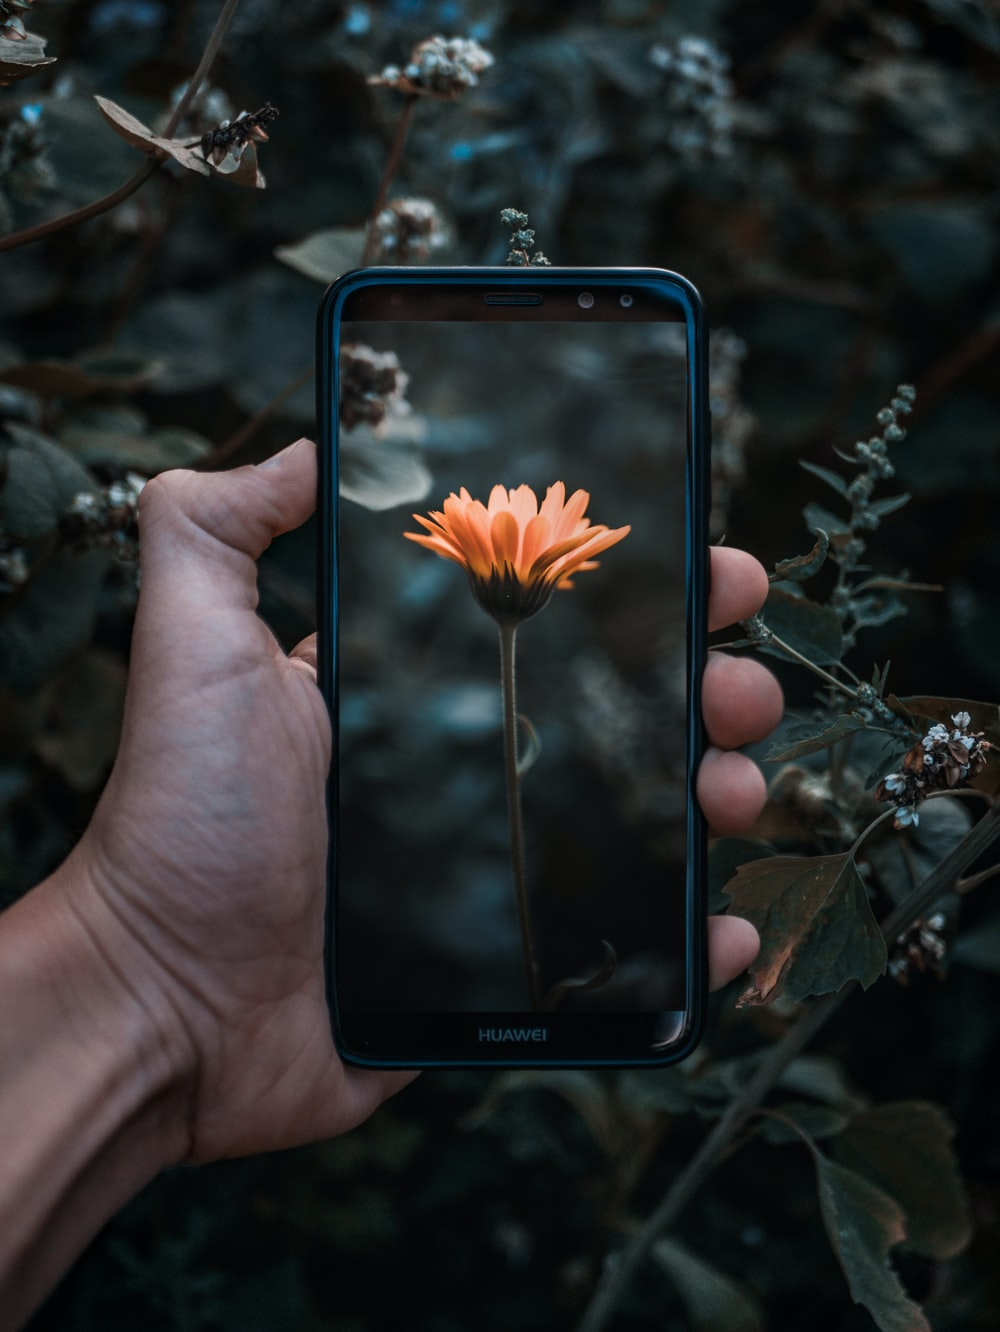 person holding smartphone displaying orange daisy flower